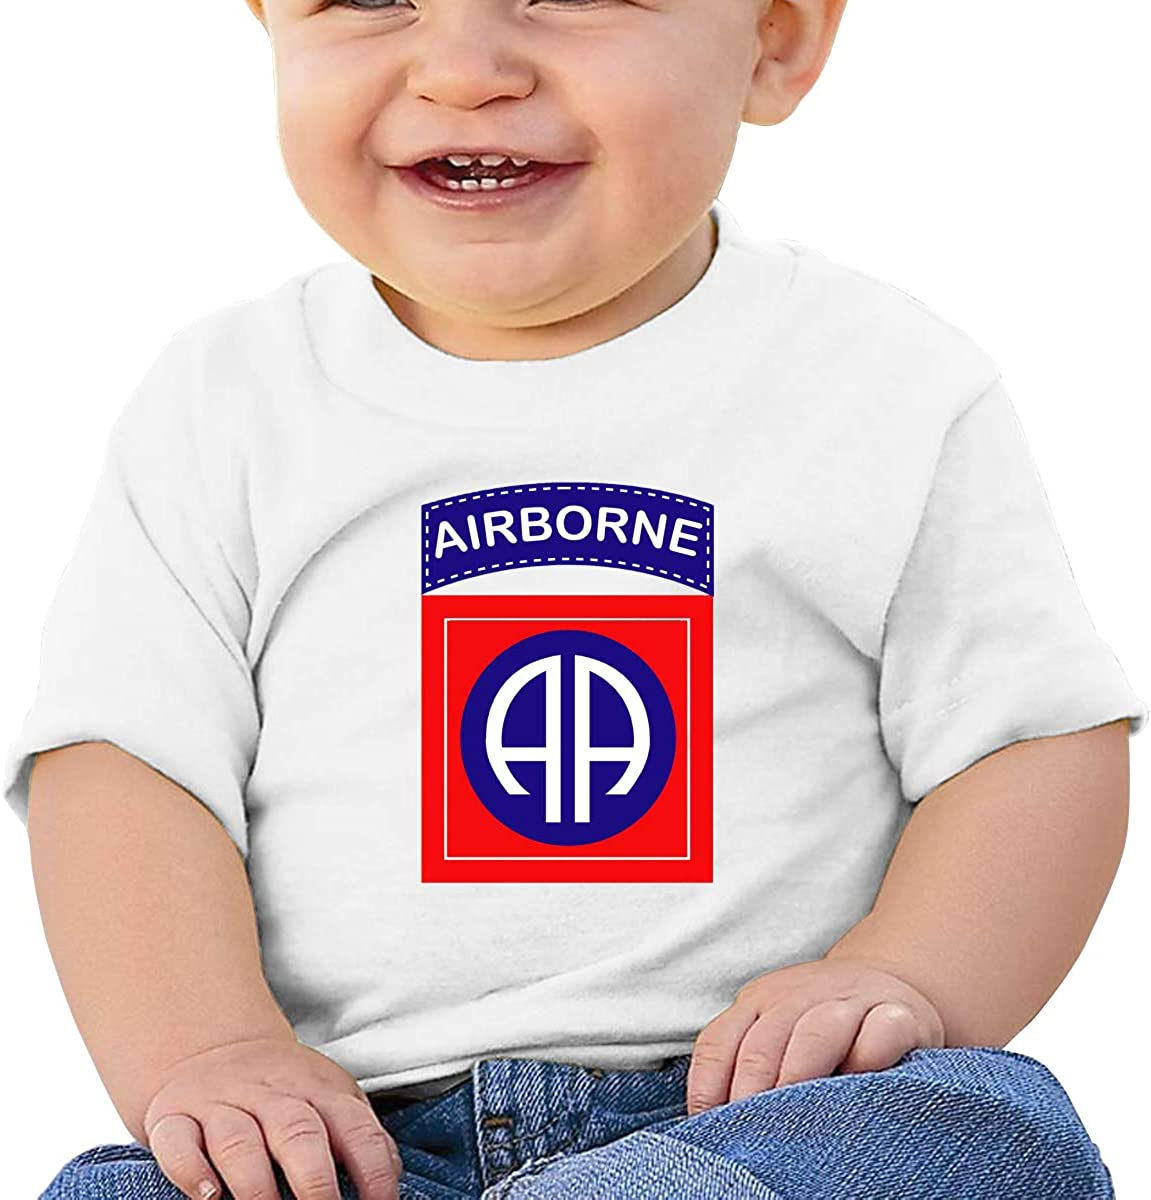 Zippem 82nd Airborne Division Short Sleeve T-Shirt Best for Baby Toddler//Infant Kids T-Shirt Close Skin Soft